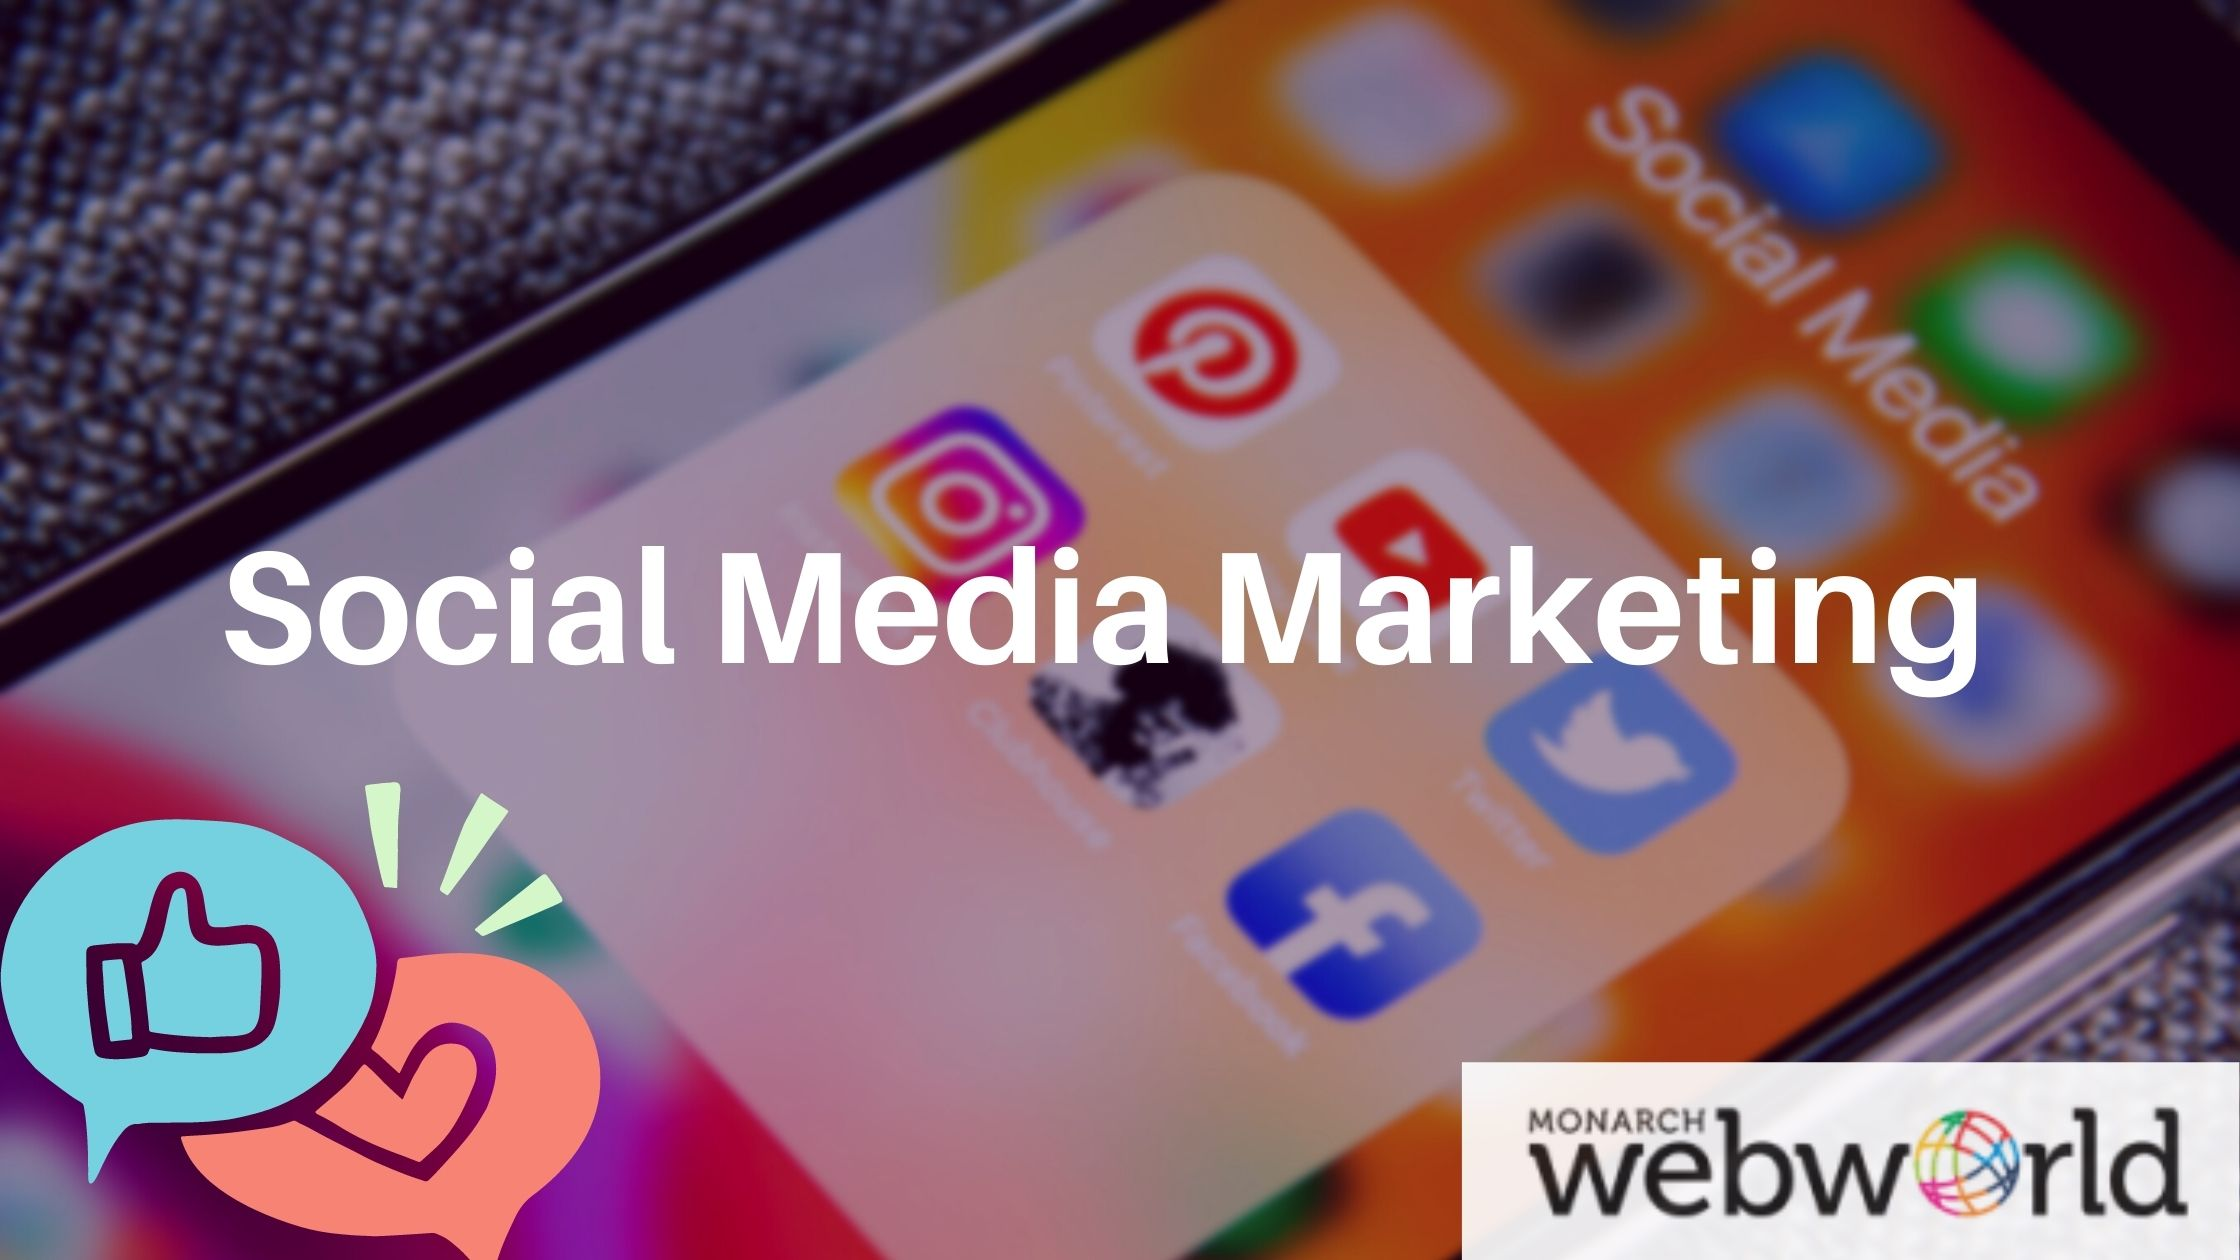 Looking for the Best Social Media Marketing Pricing Plans for Your Business